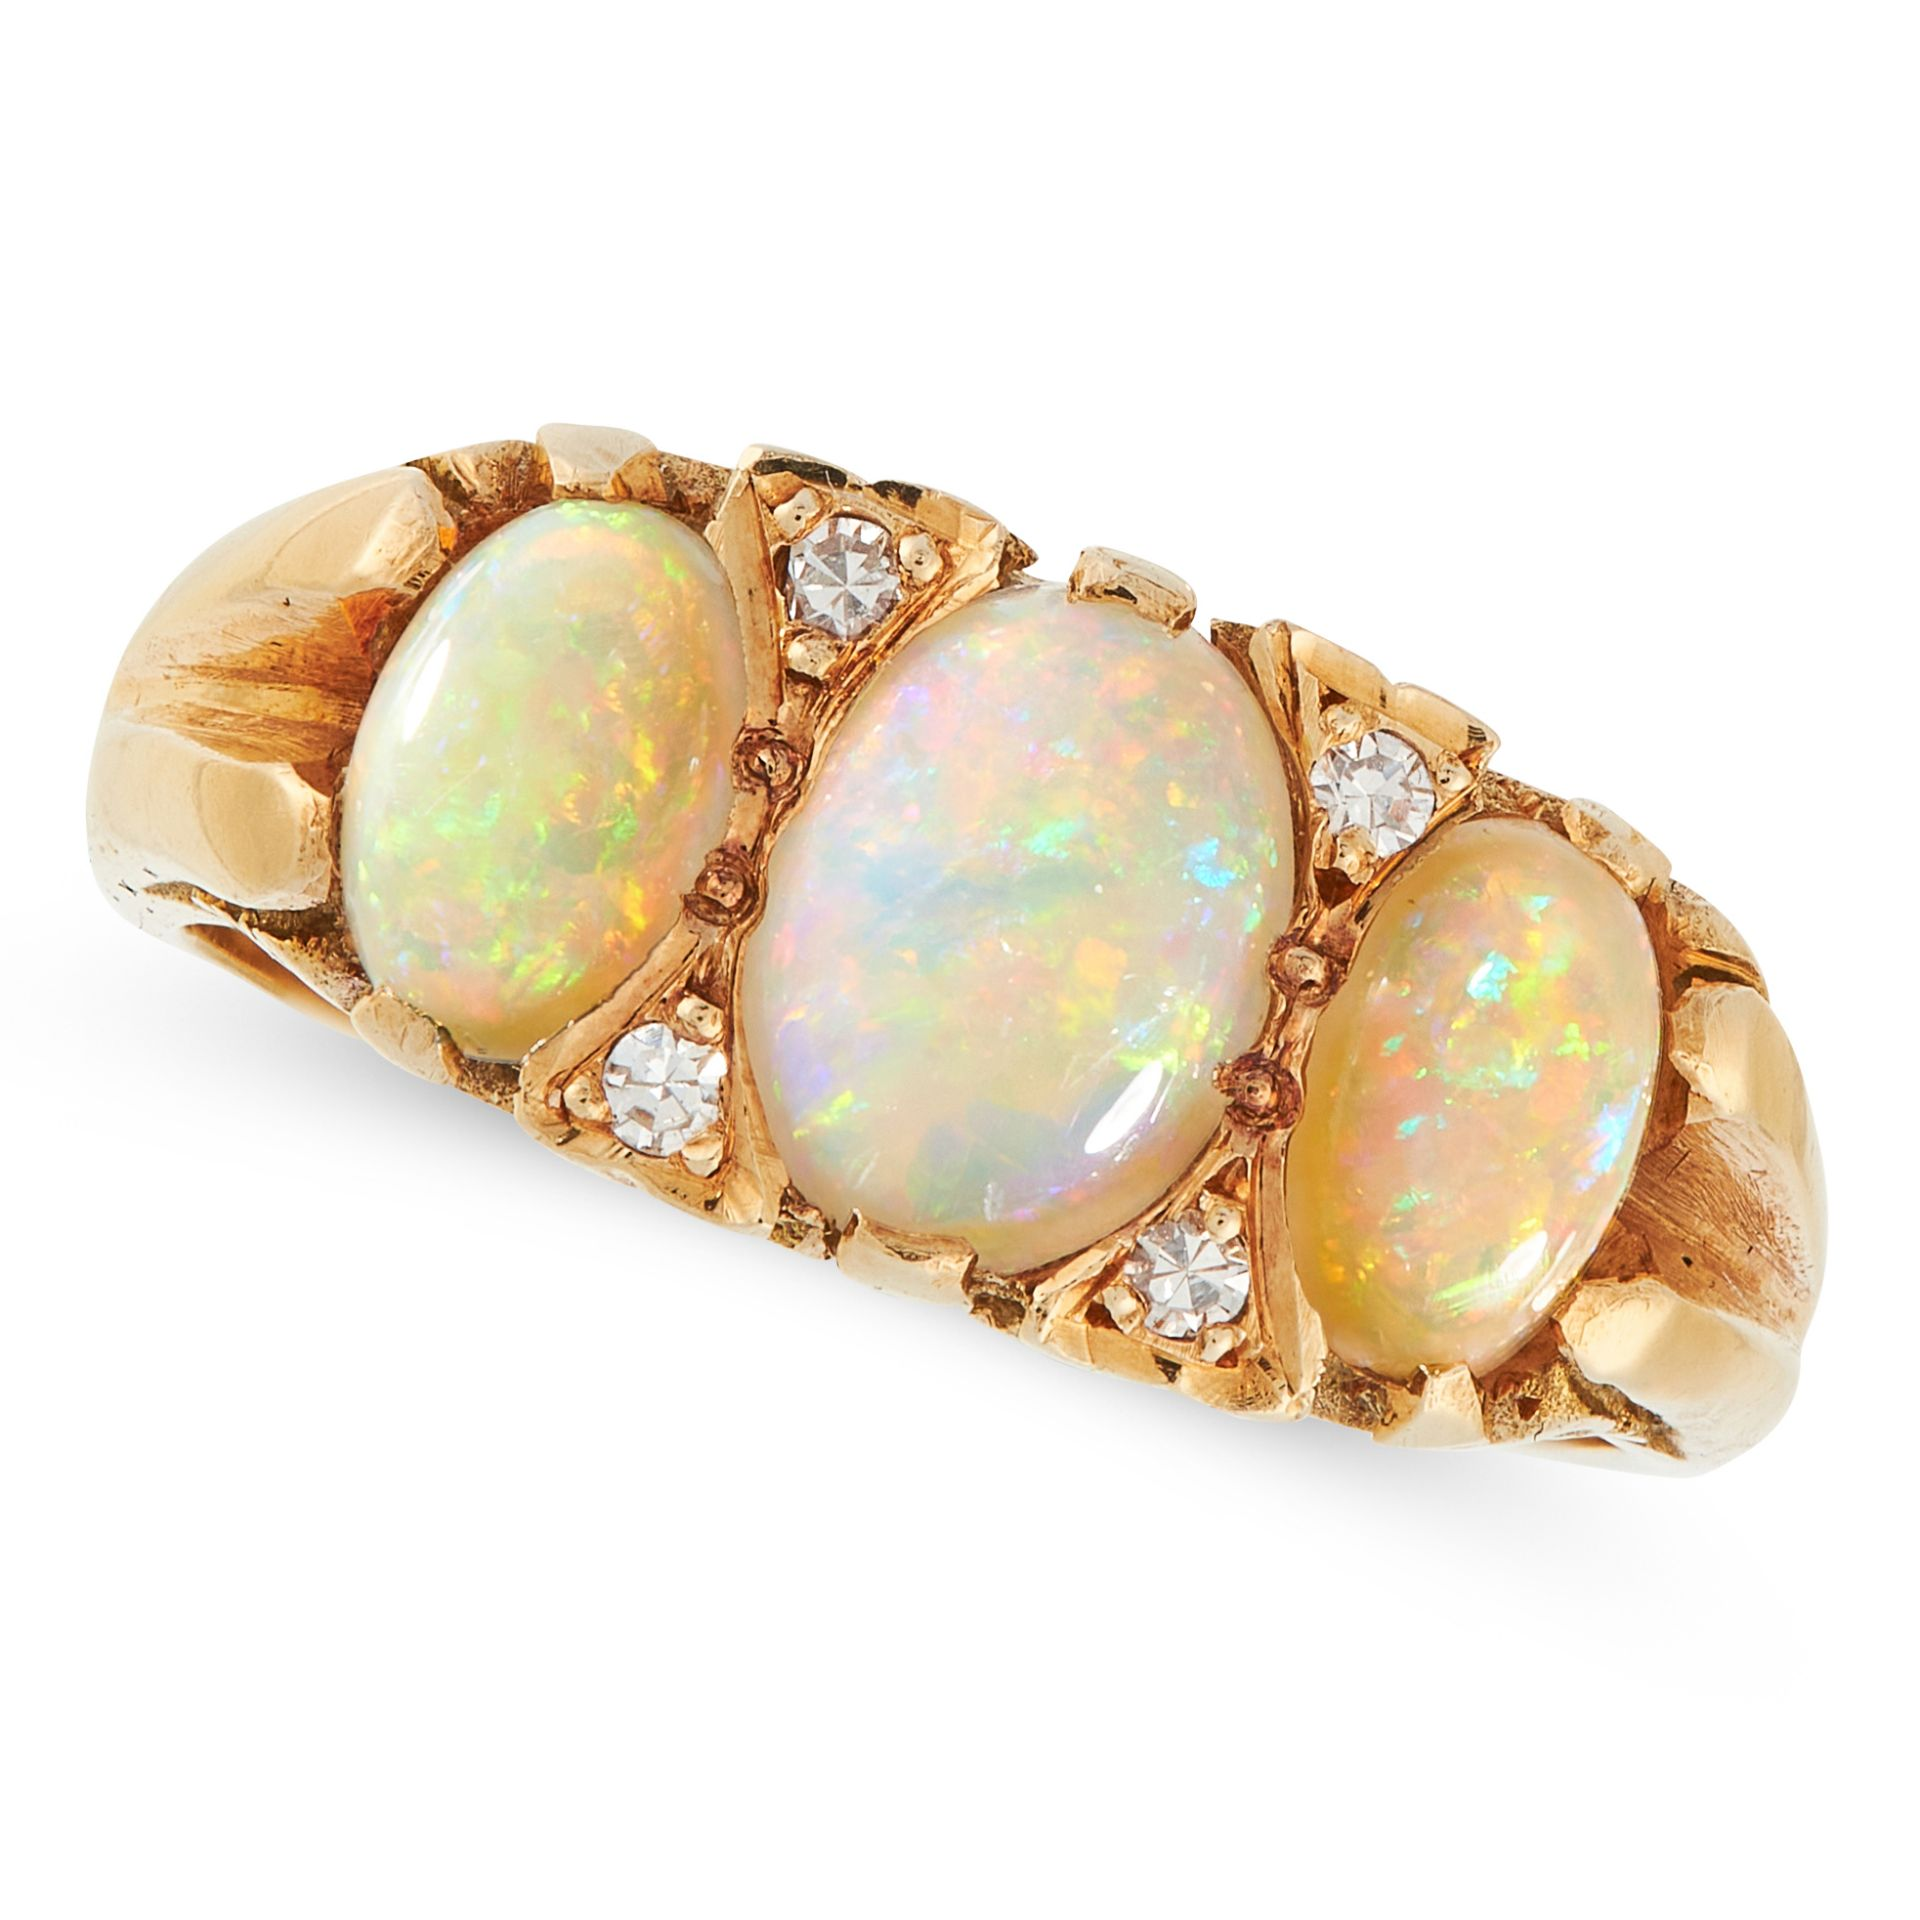 AN OPAL AND DIAMOND DRESS RING in 18ct yellow gold, set with three cabochon opals accented by rose